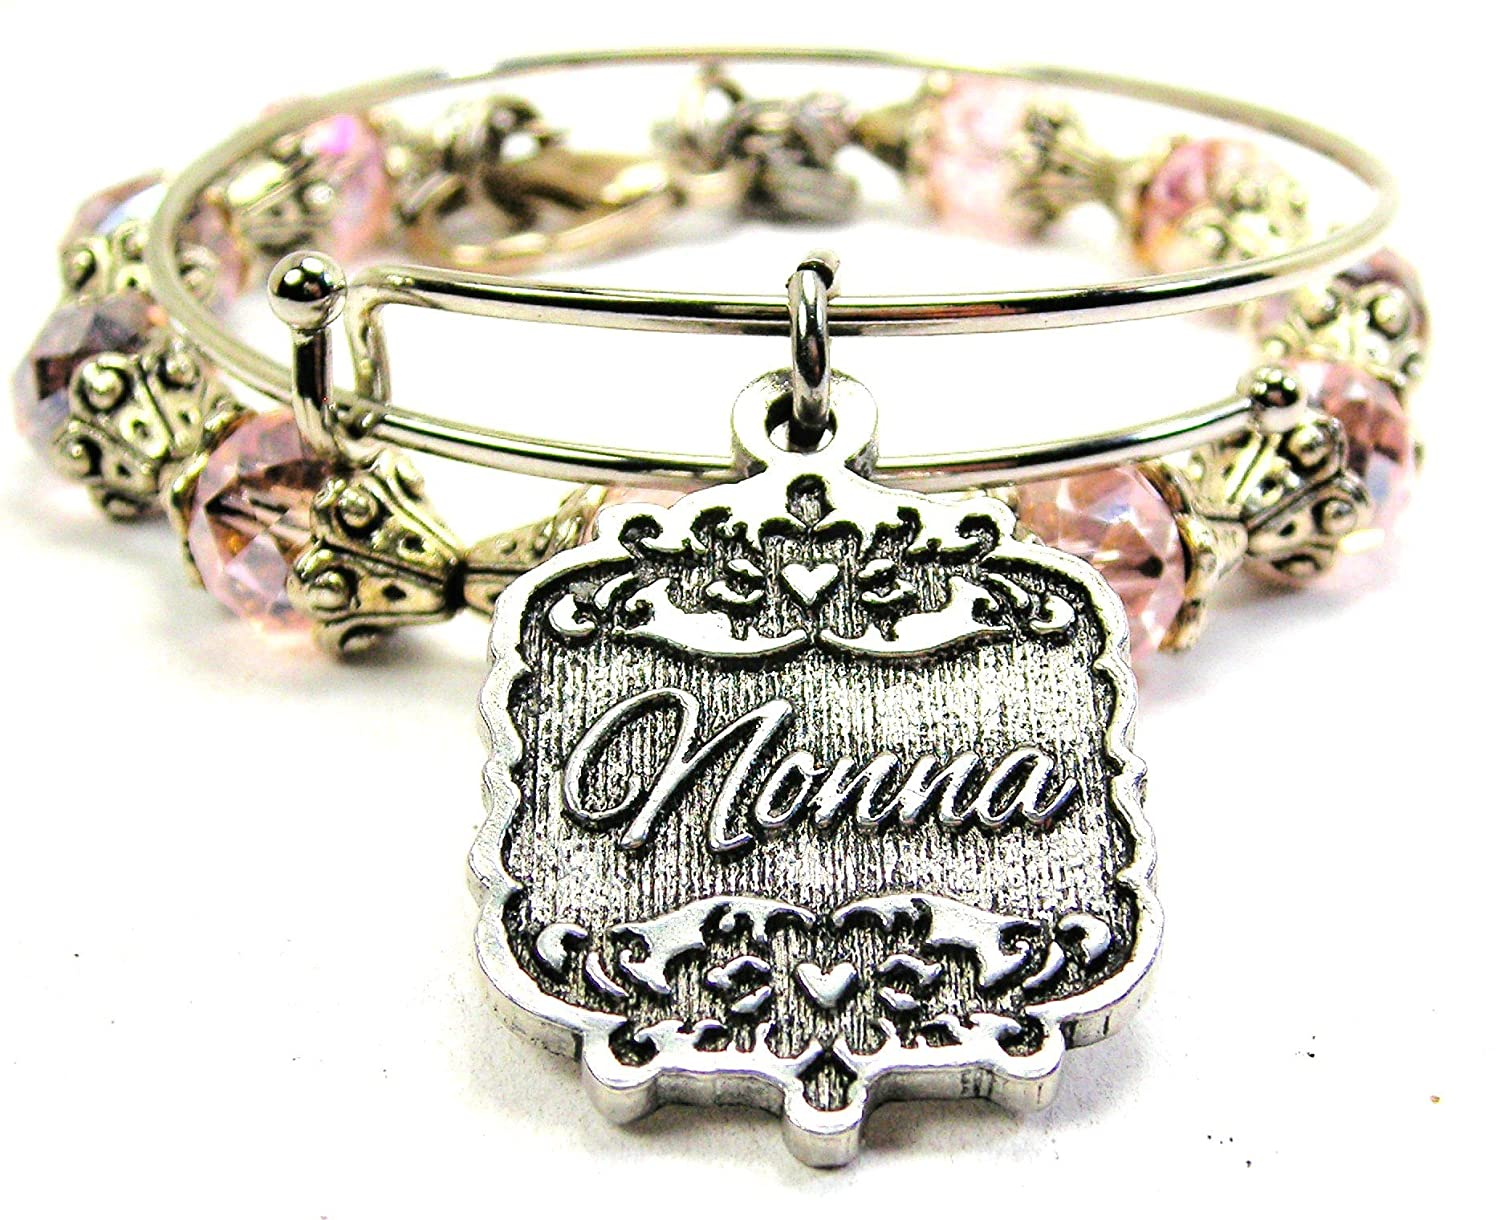 Chubby Chico Charms Nonna Victorian Scroll Crystal Collection Bracelet Set in Lavender Purple